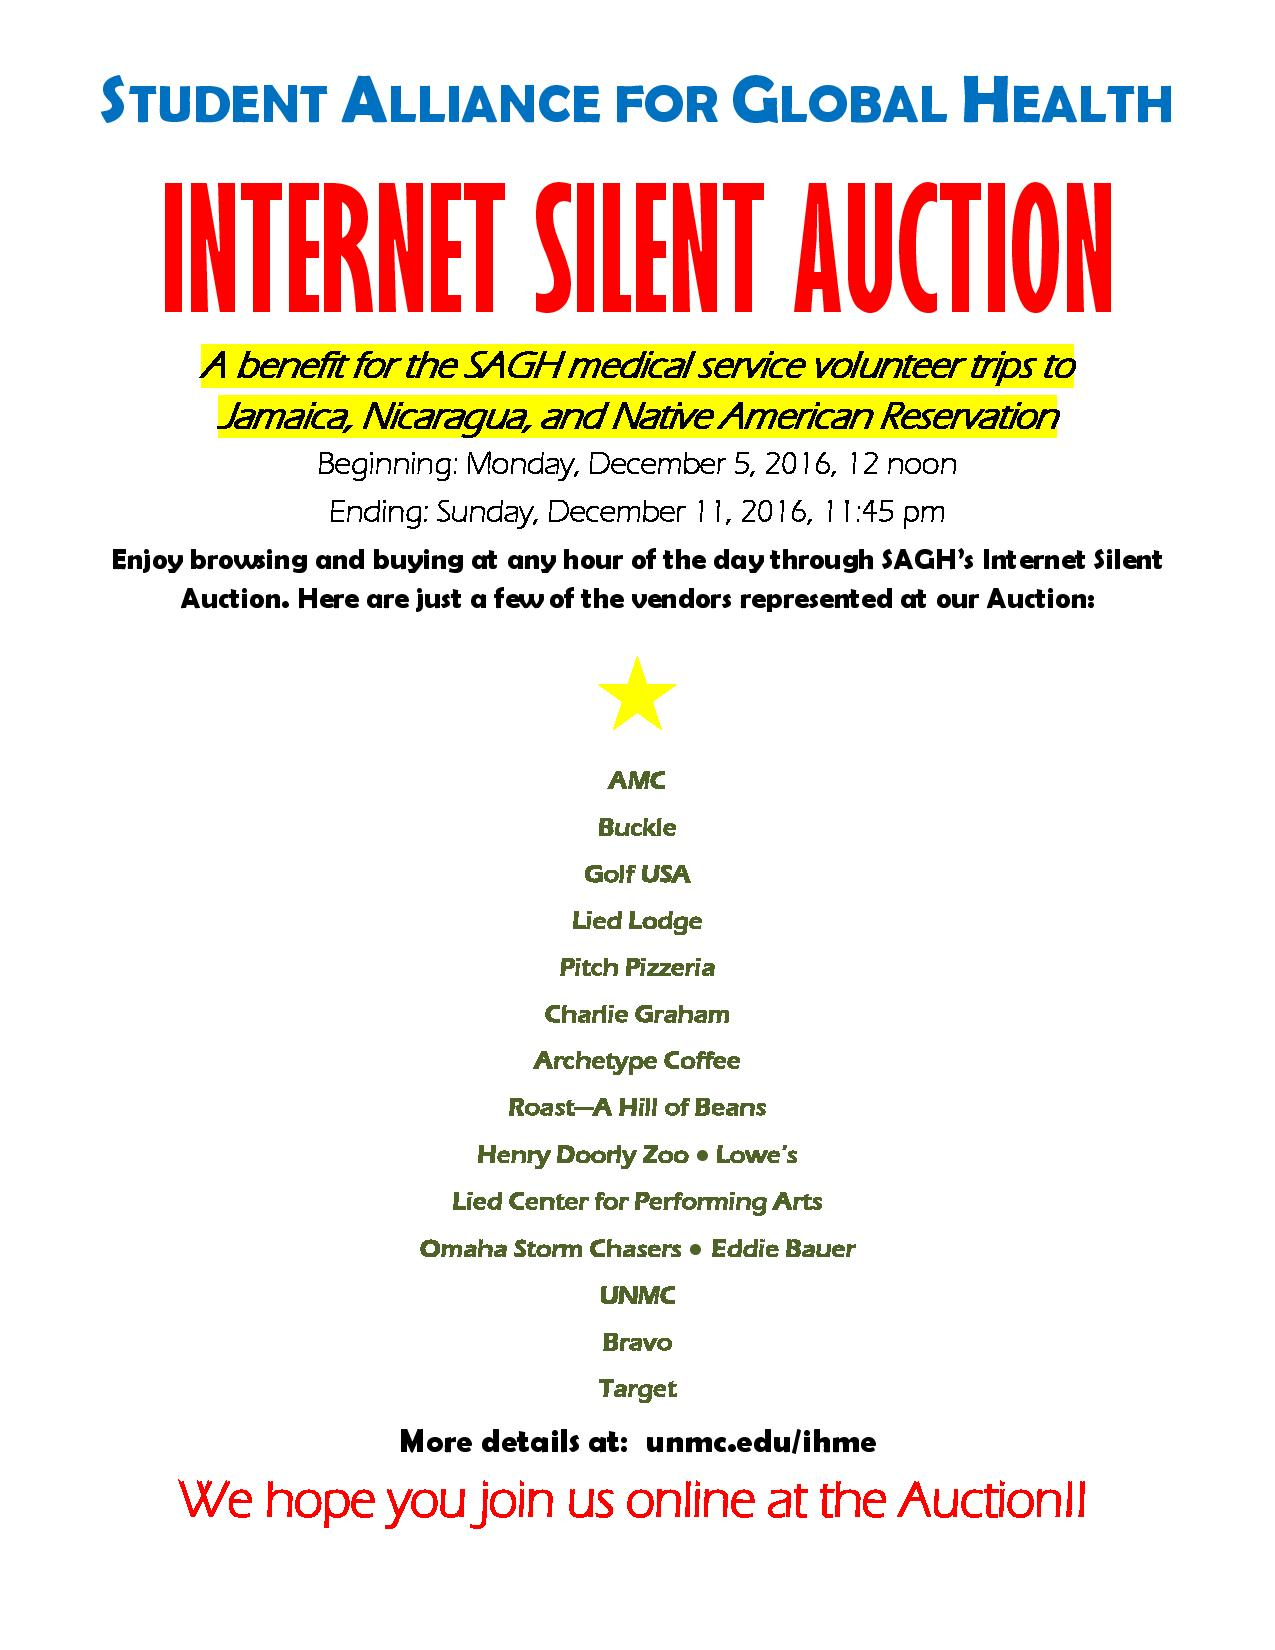 sagh internet silent auction flyer graduate student association